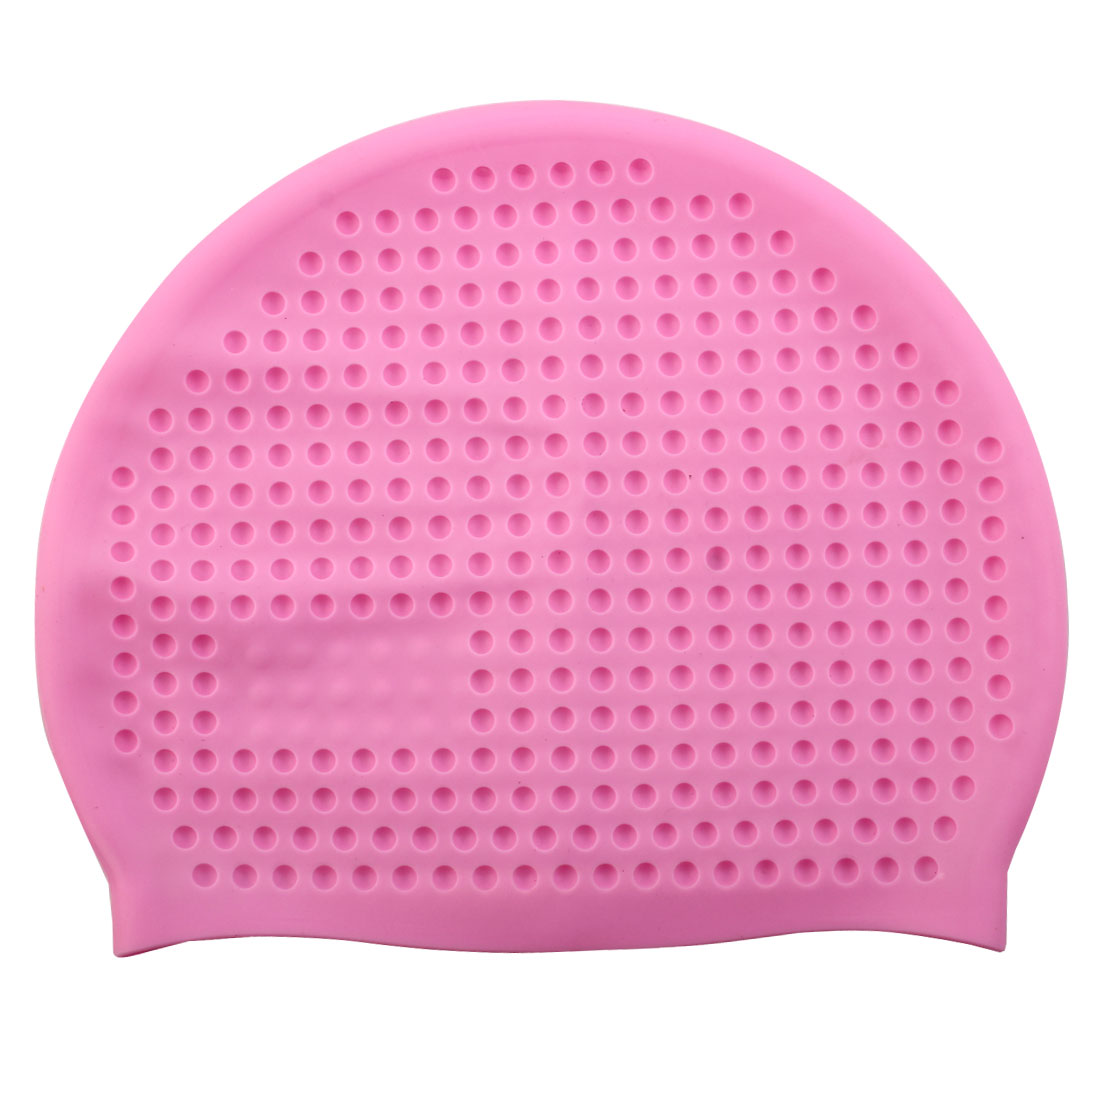 Adult Silicone Dome Shaped Water Resistant Elastic Swimming Cap Portable Bathing Hat Pink